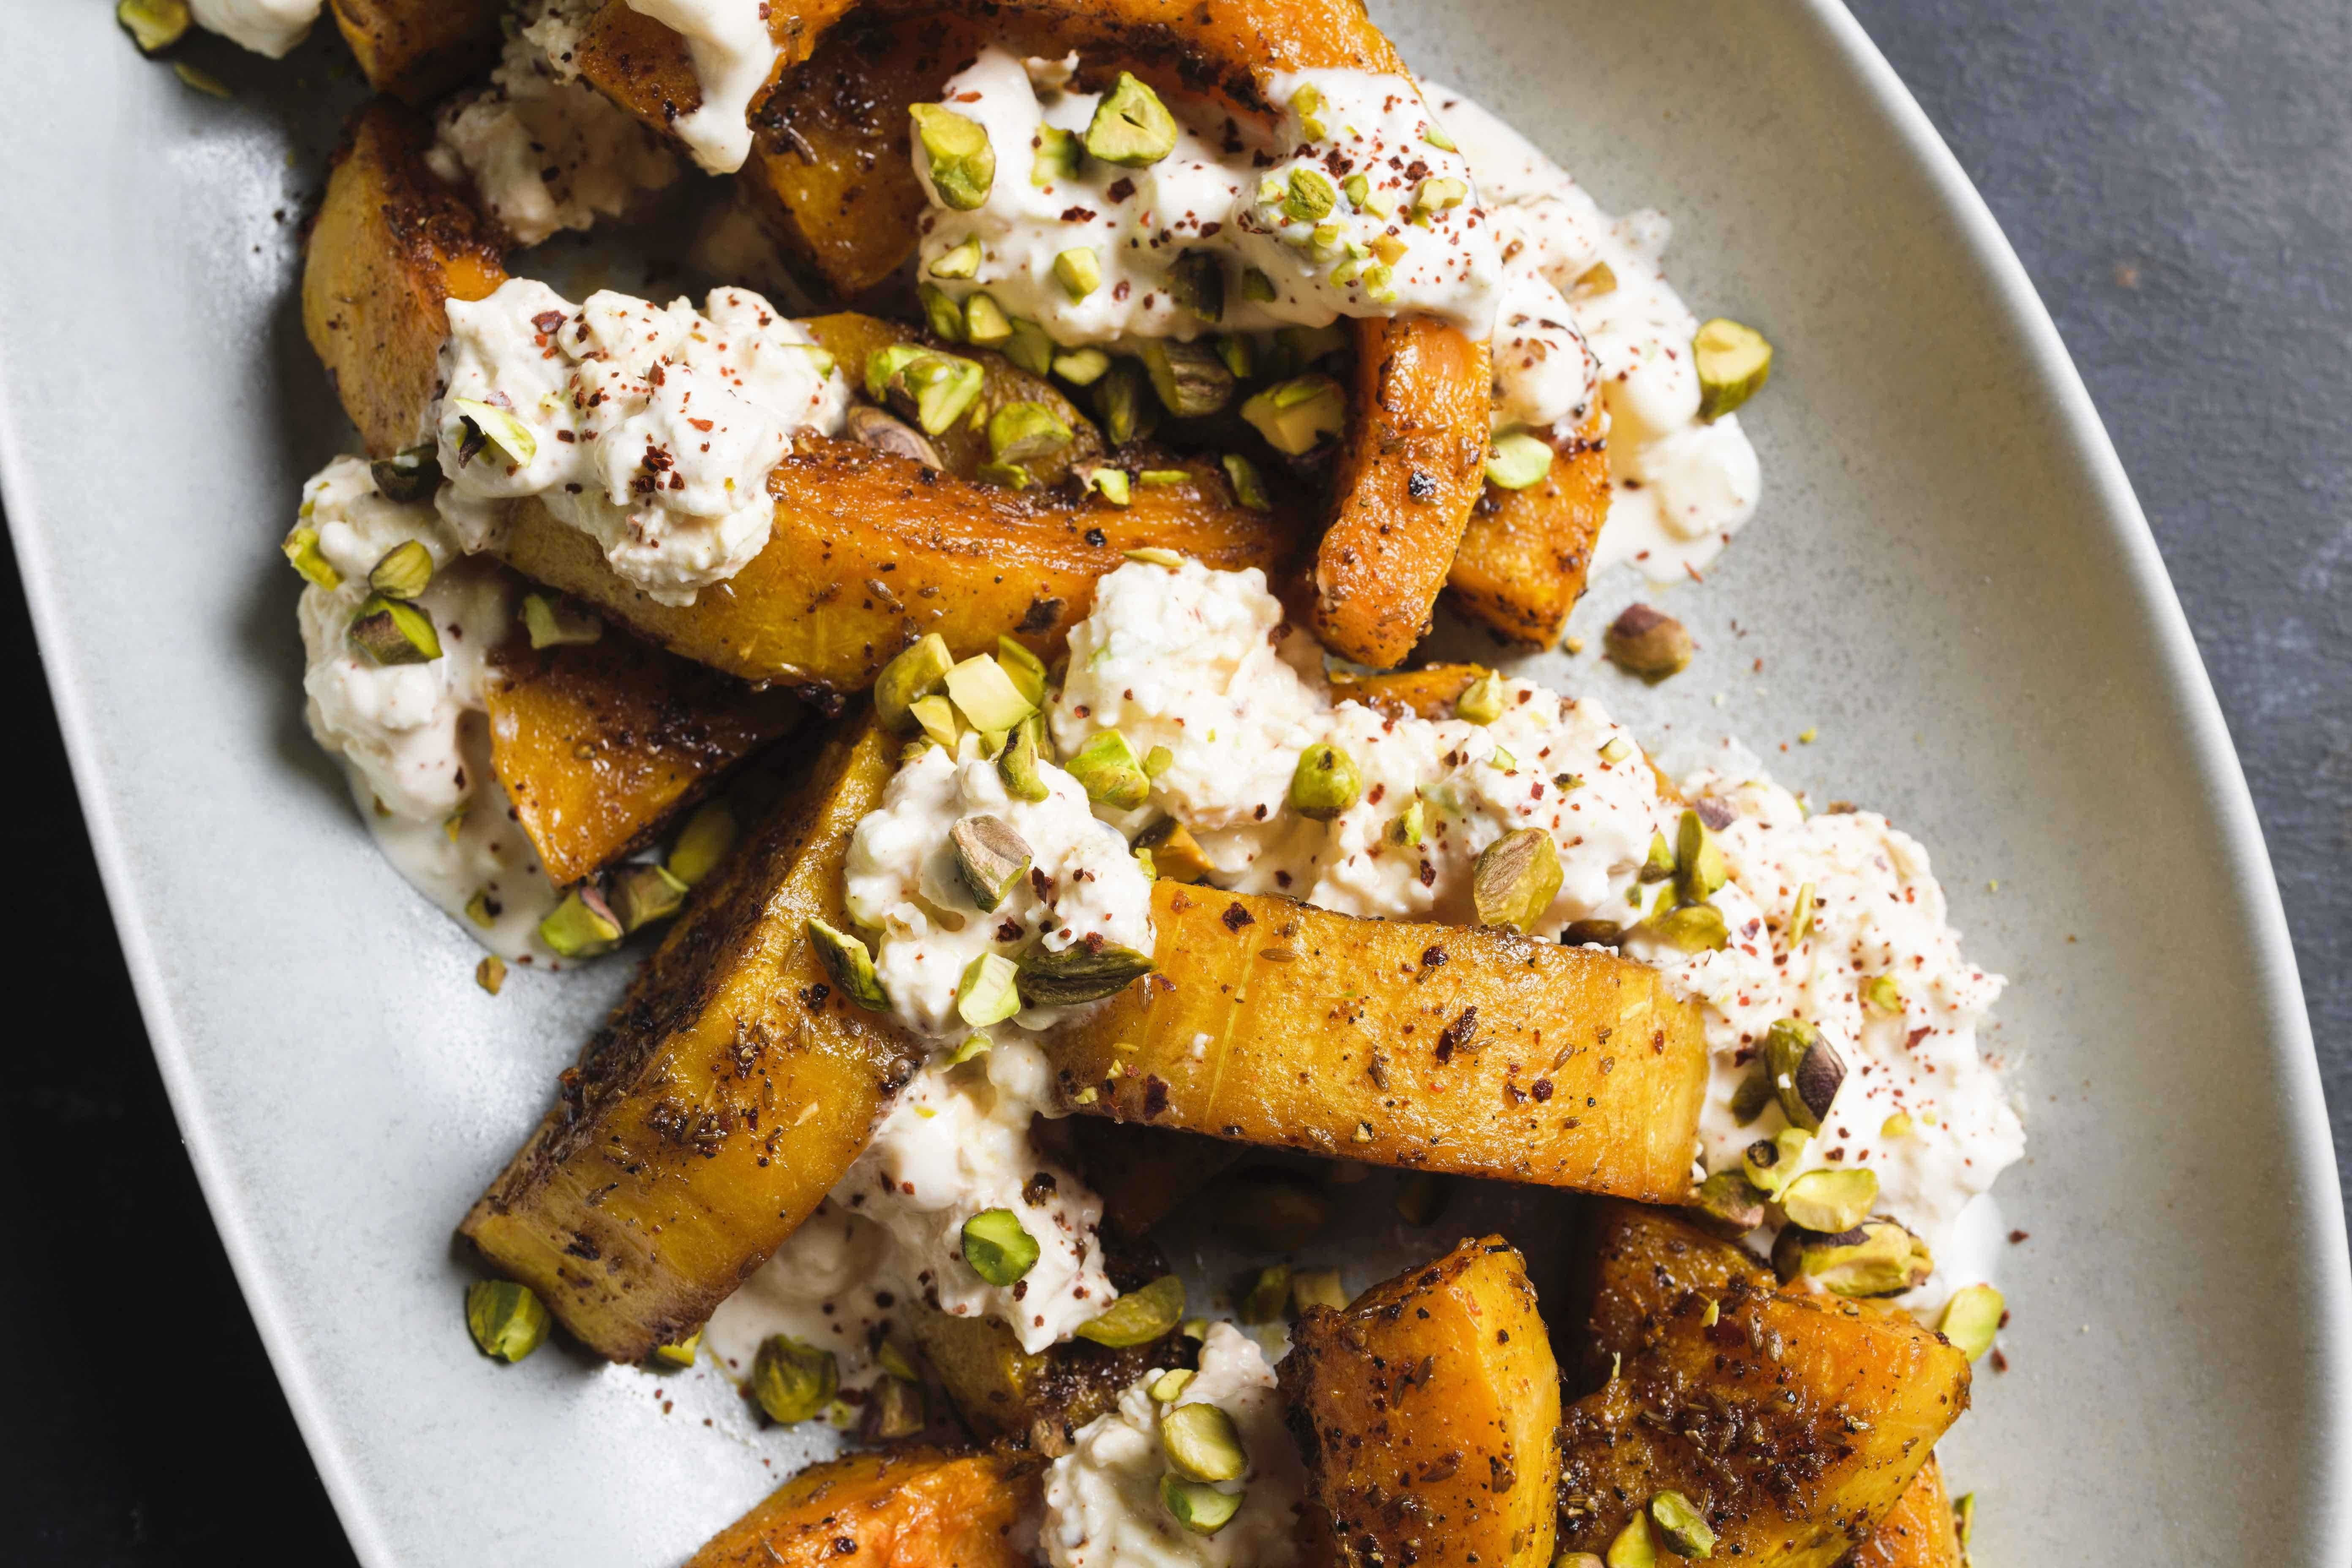 Roasted Butternut Squash with Cumin Seeds, Feta and Pistachios